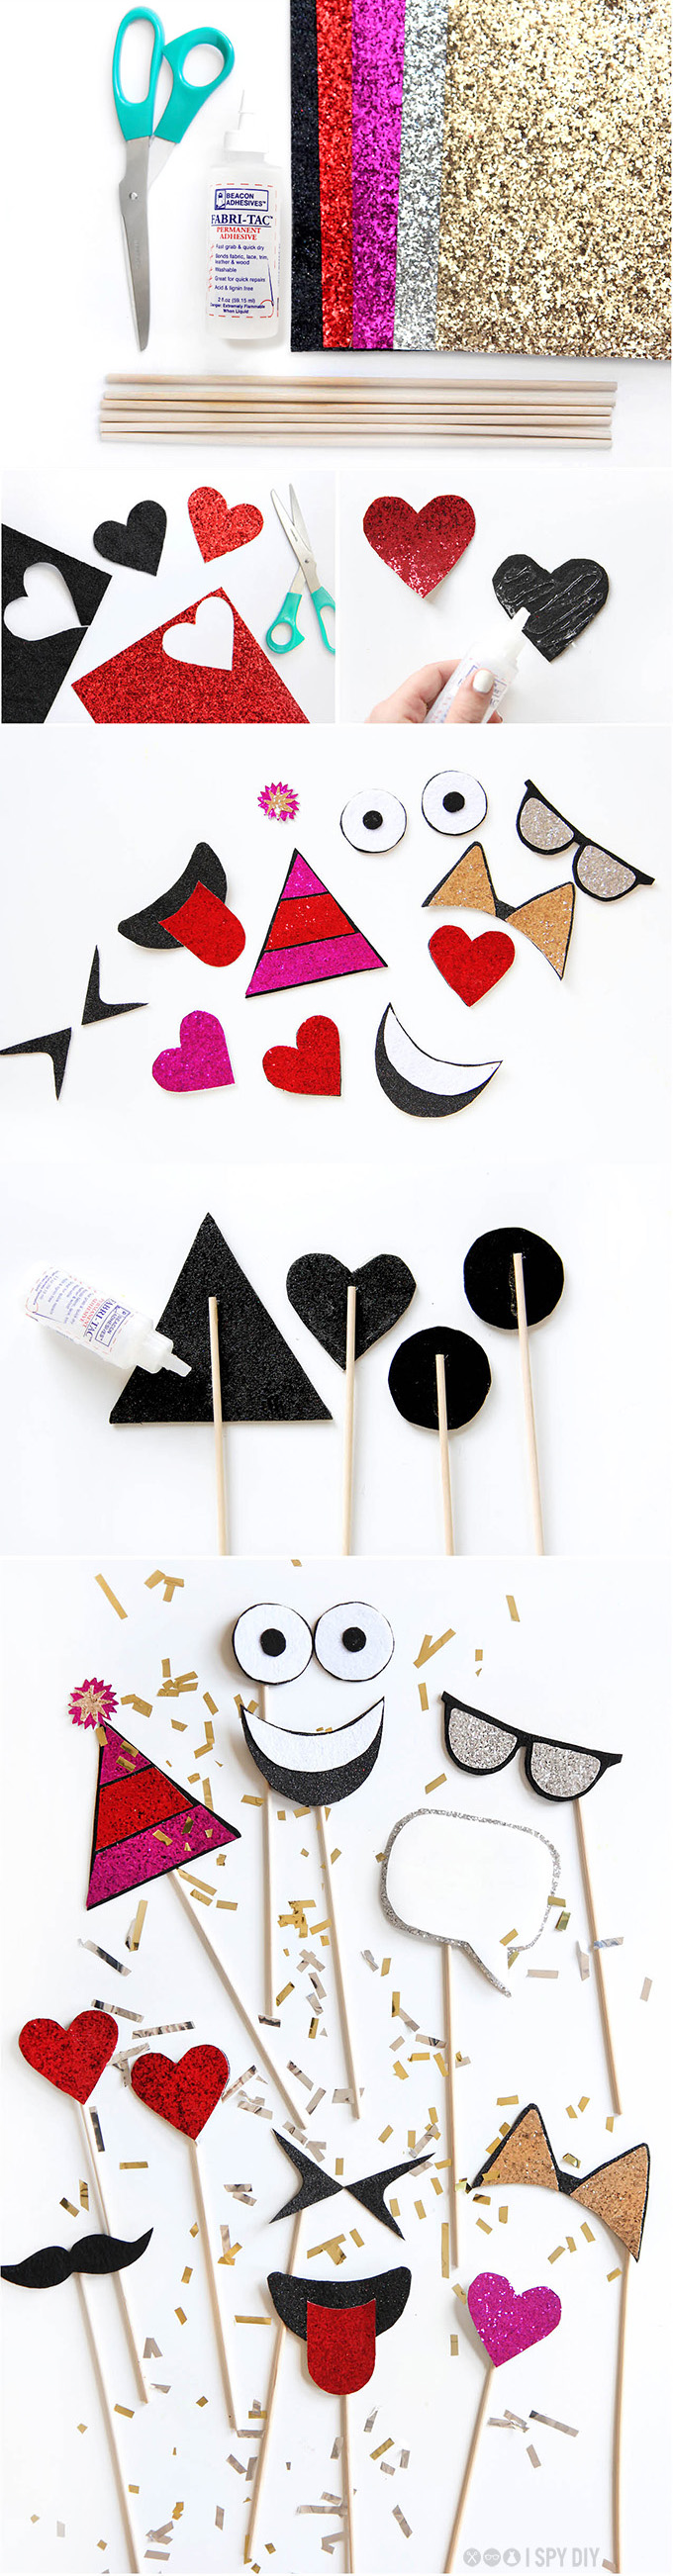 Ispydiy_NYE_Photoprops